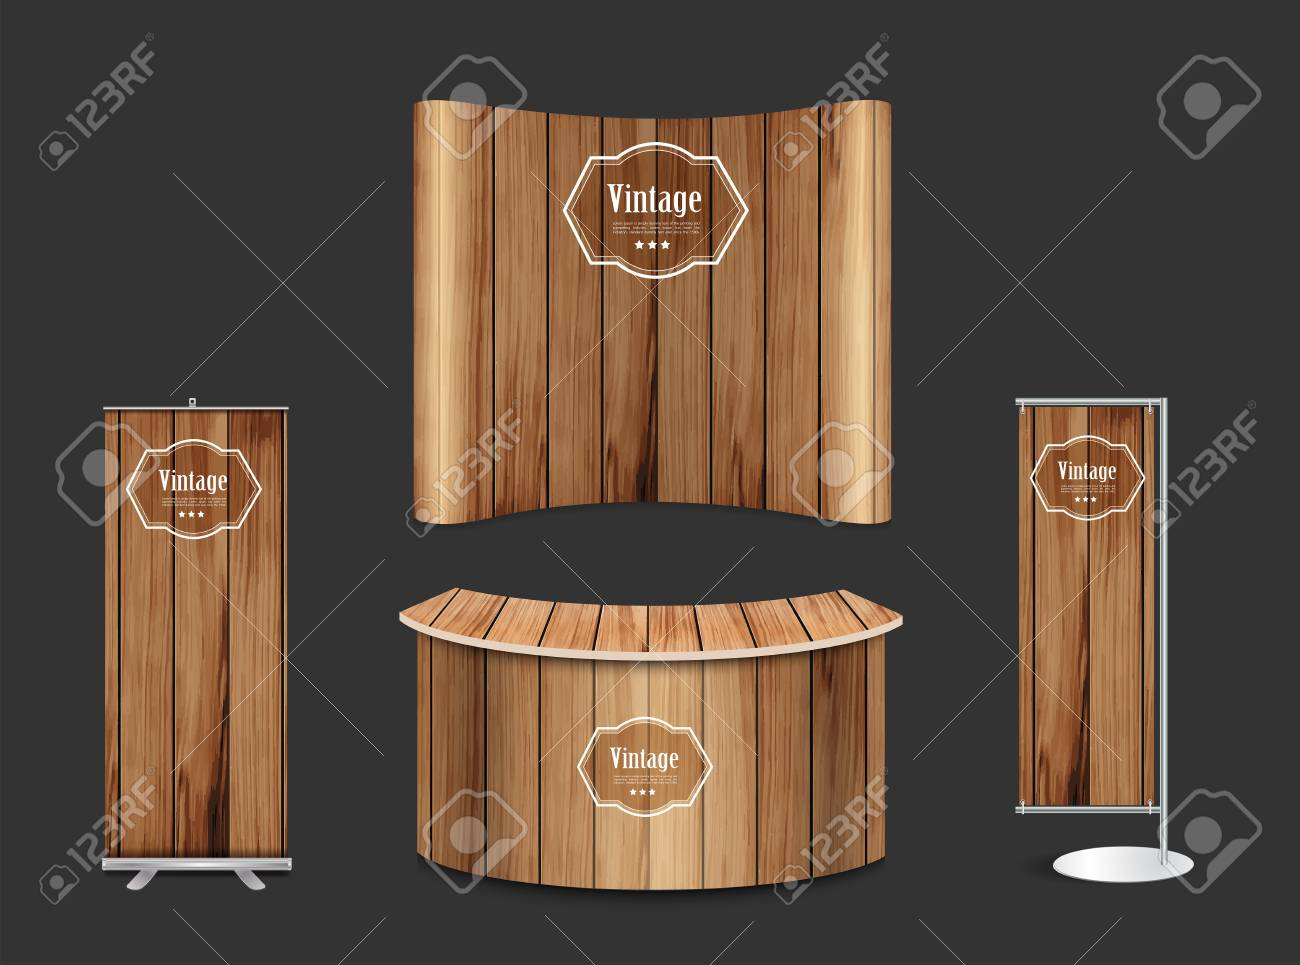 Trade Show Booth Layout : Trade show booths expomarketing